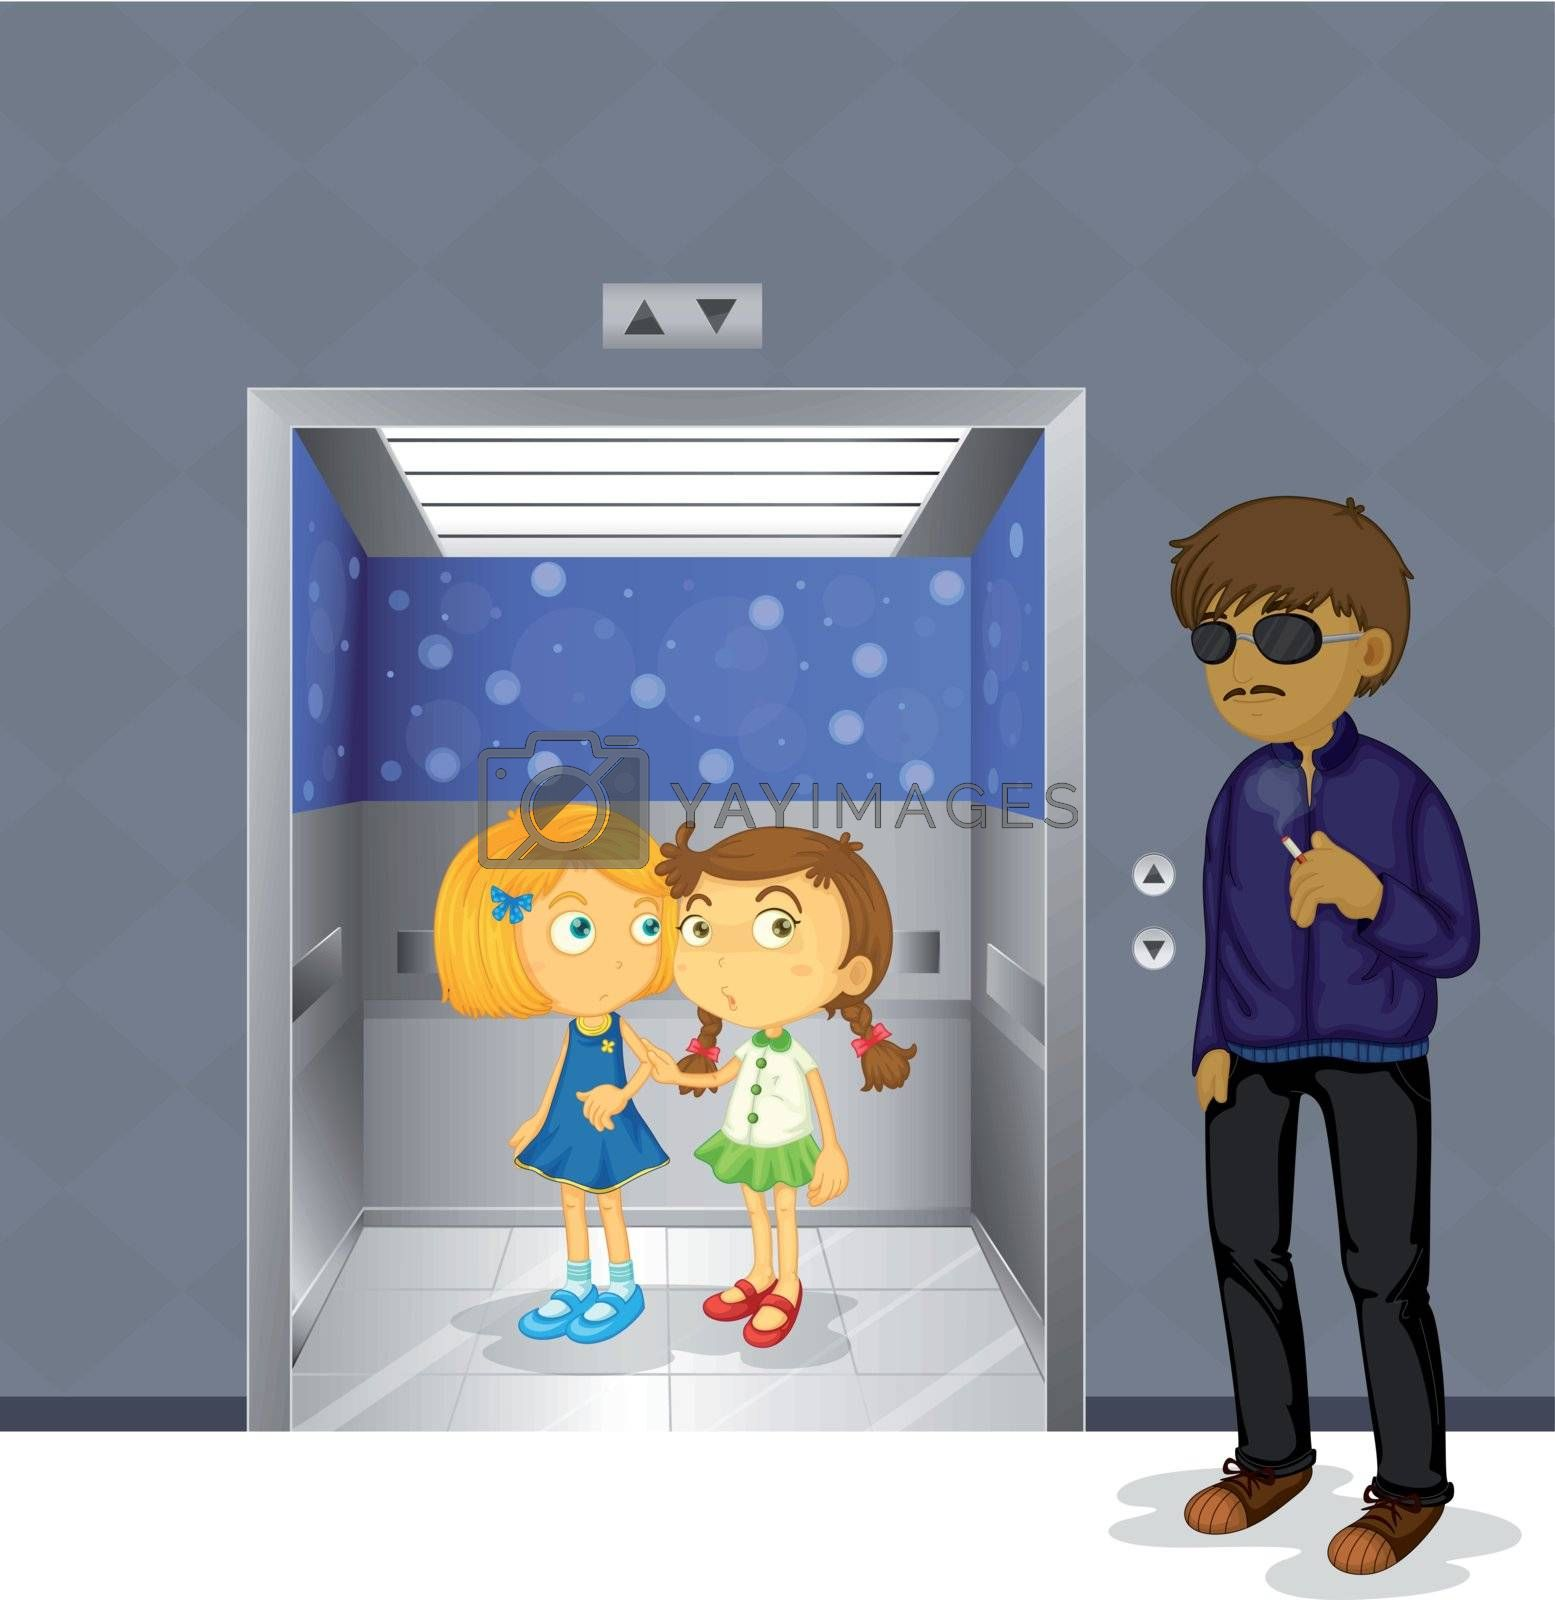 Illustration of the young girls inside the elevator and a scary man outside